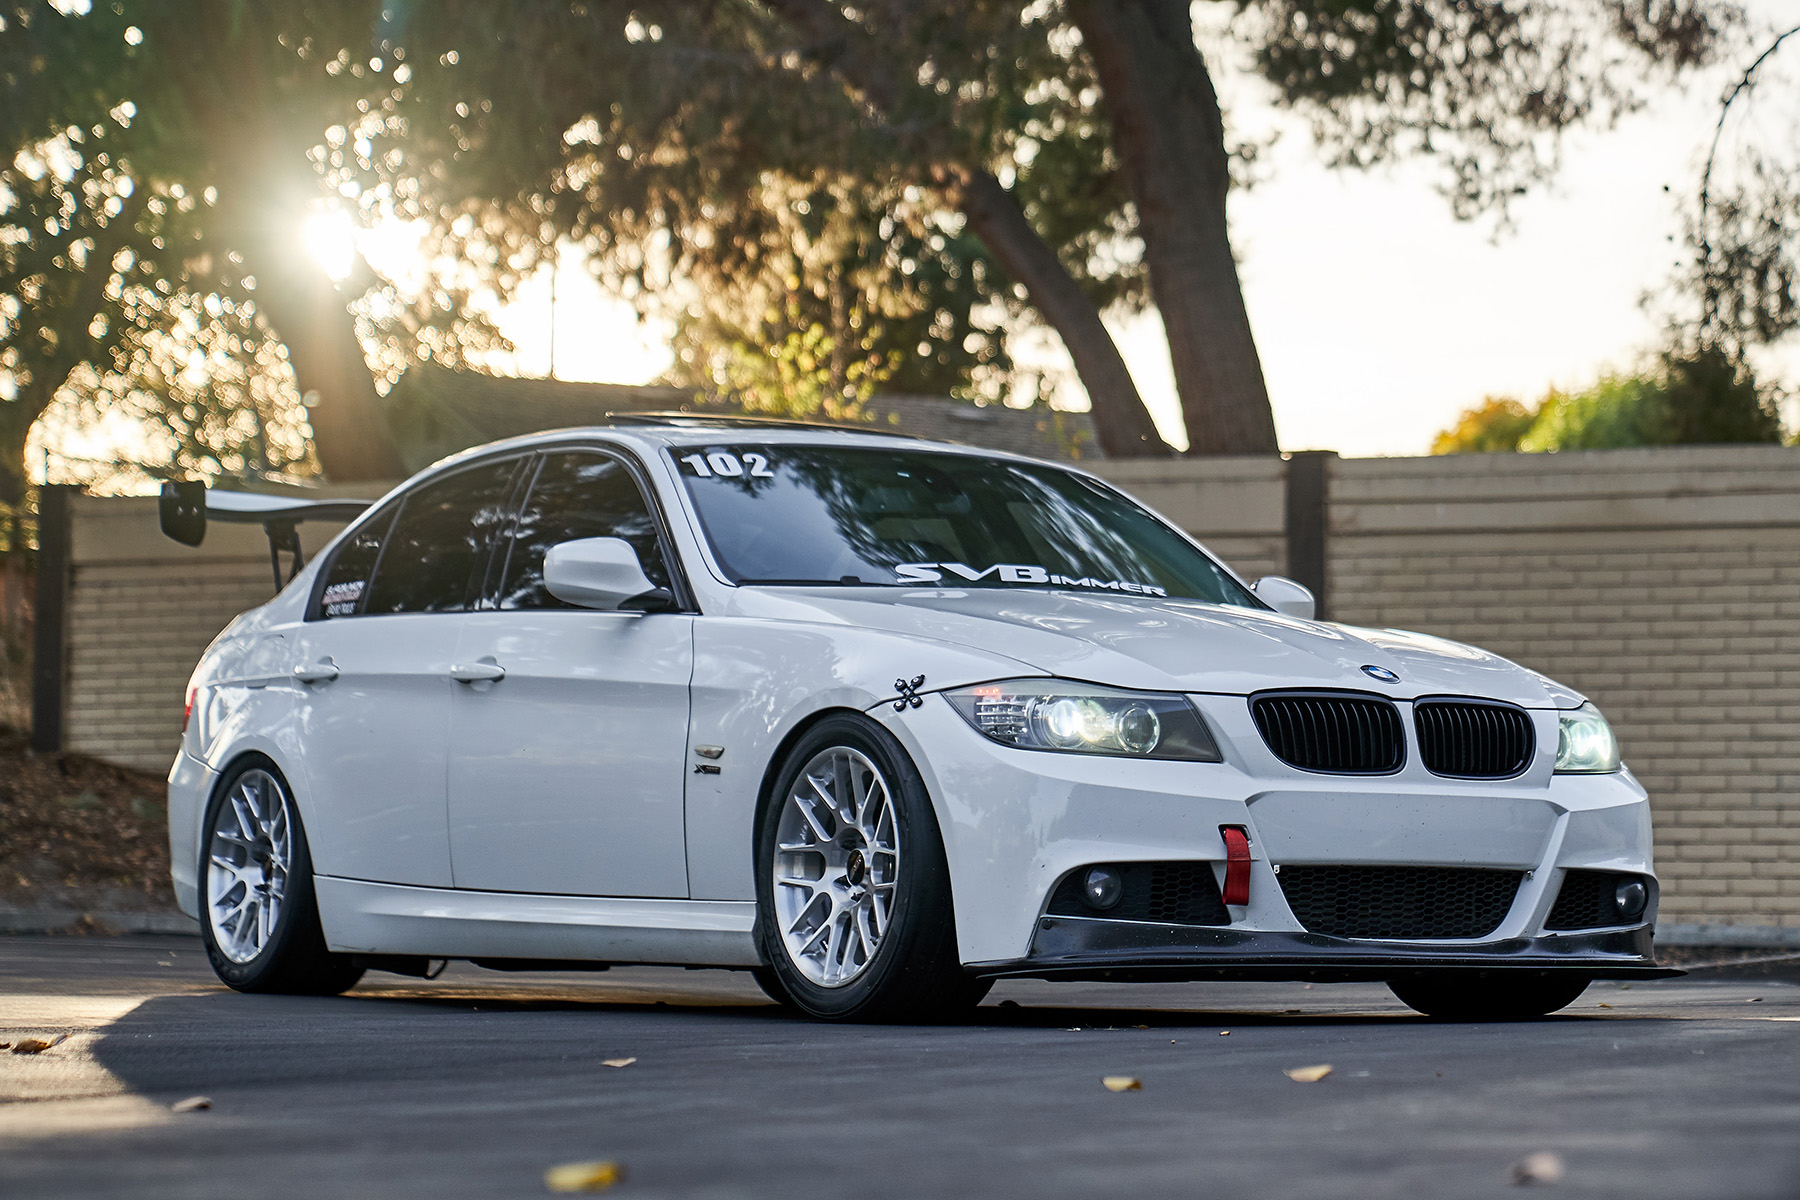 Bmw E90 335xi Featuring Arc 8r Forged Wheels Apex Race Parts Blog